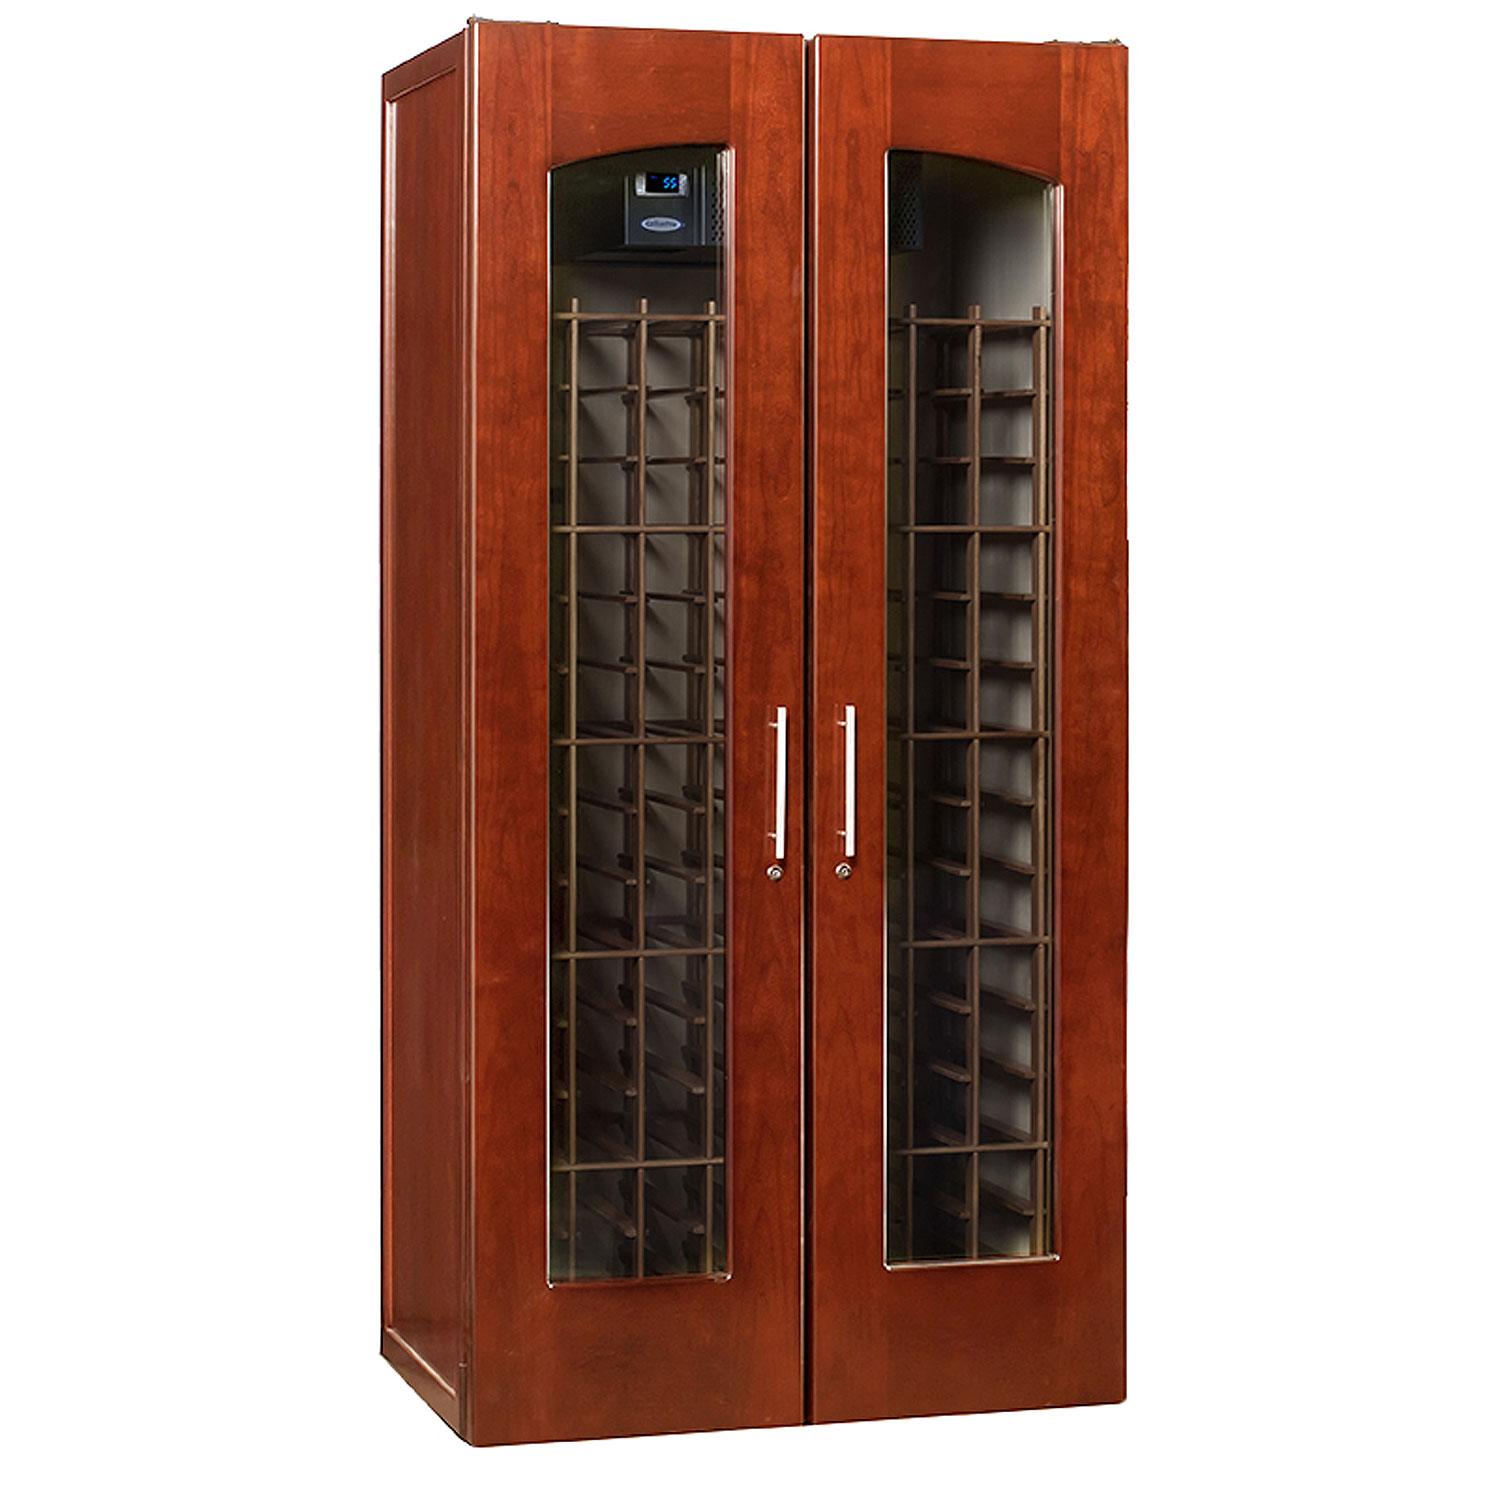 Le Cache Model 2400 Wine Cellar  sc 1 st  BeverageFactory.com & Le Cache 2400 Premium Wine Cellar Cabinet - Classic Cherry Finish ...